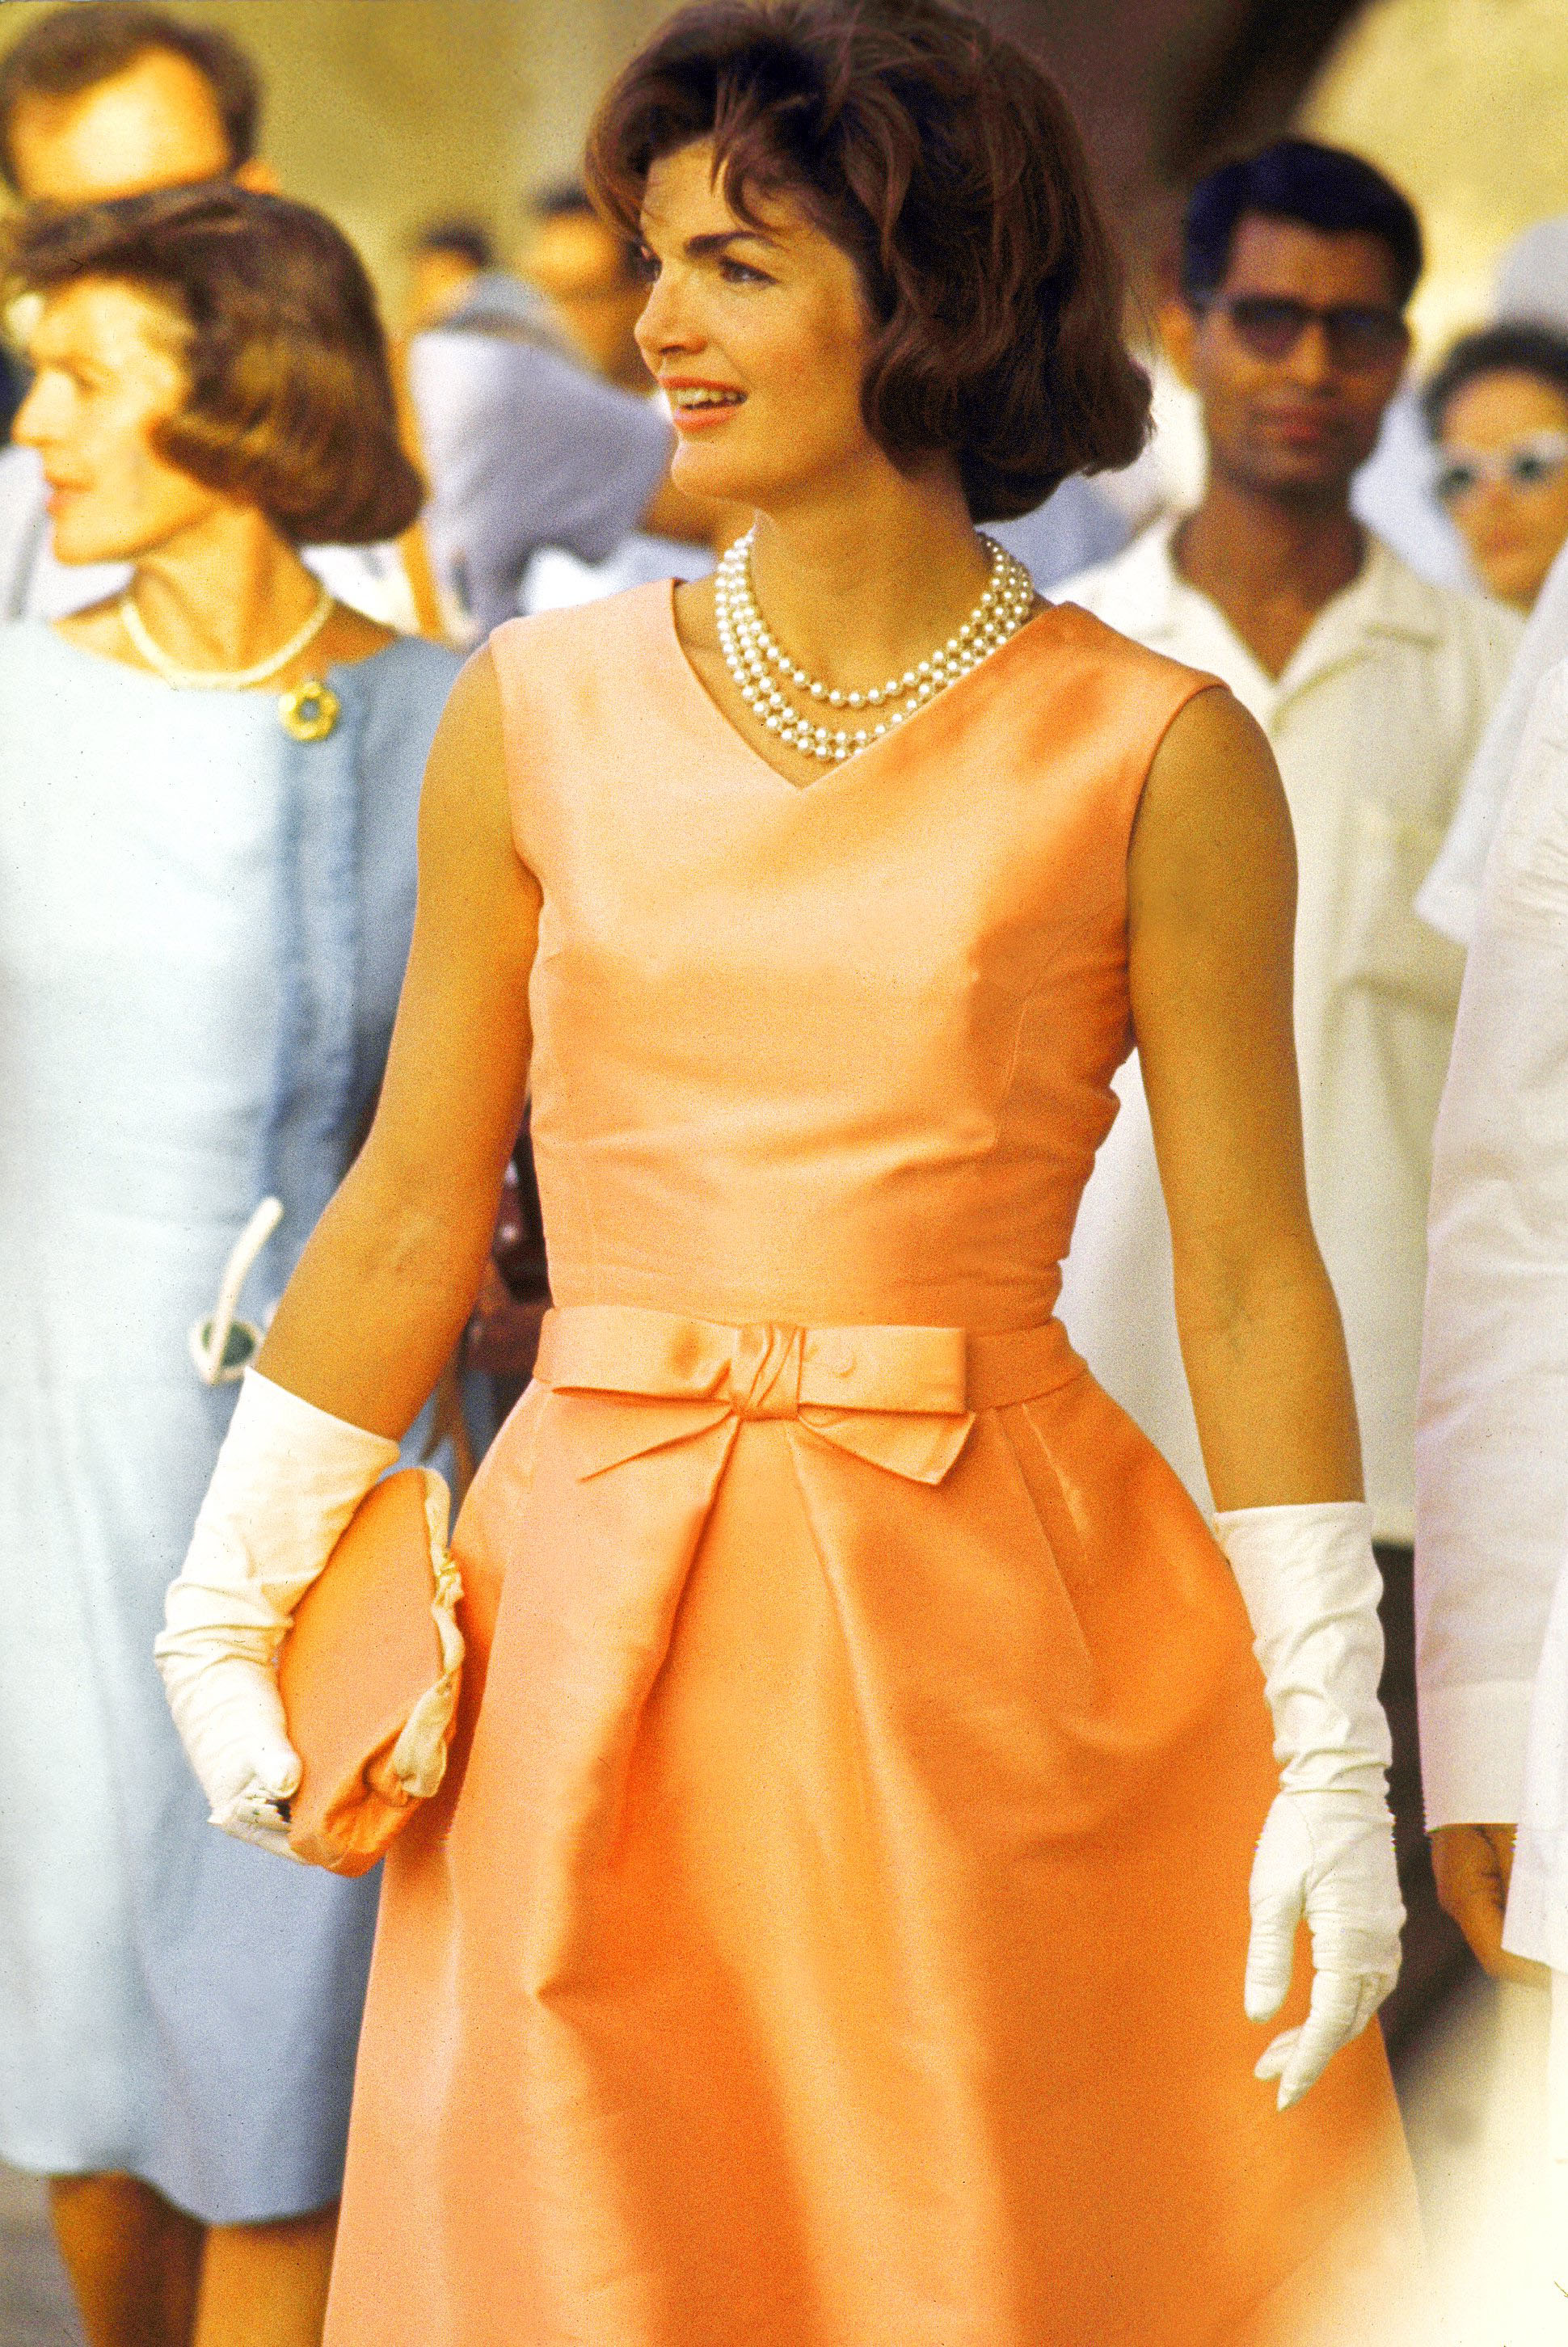 First Lady Jackie Kennedy wearing a fitted silk apricot dress and triple strand of pearls, walking through crowds at Udaipur during visit to India, 1962.